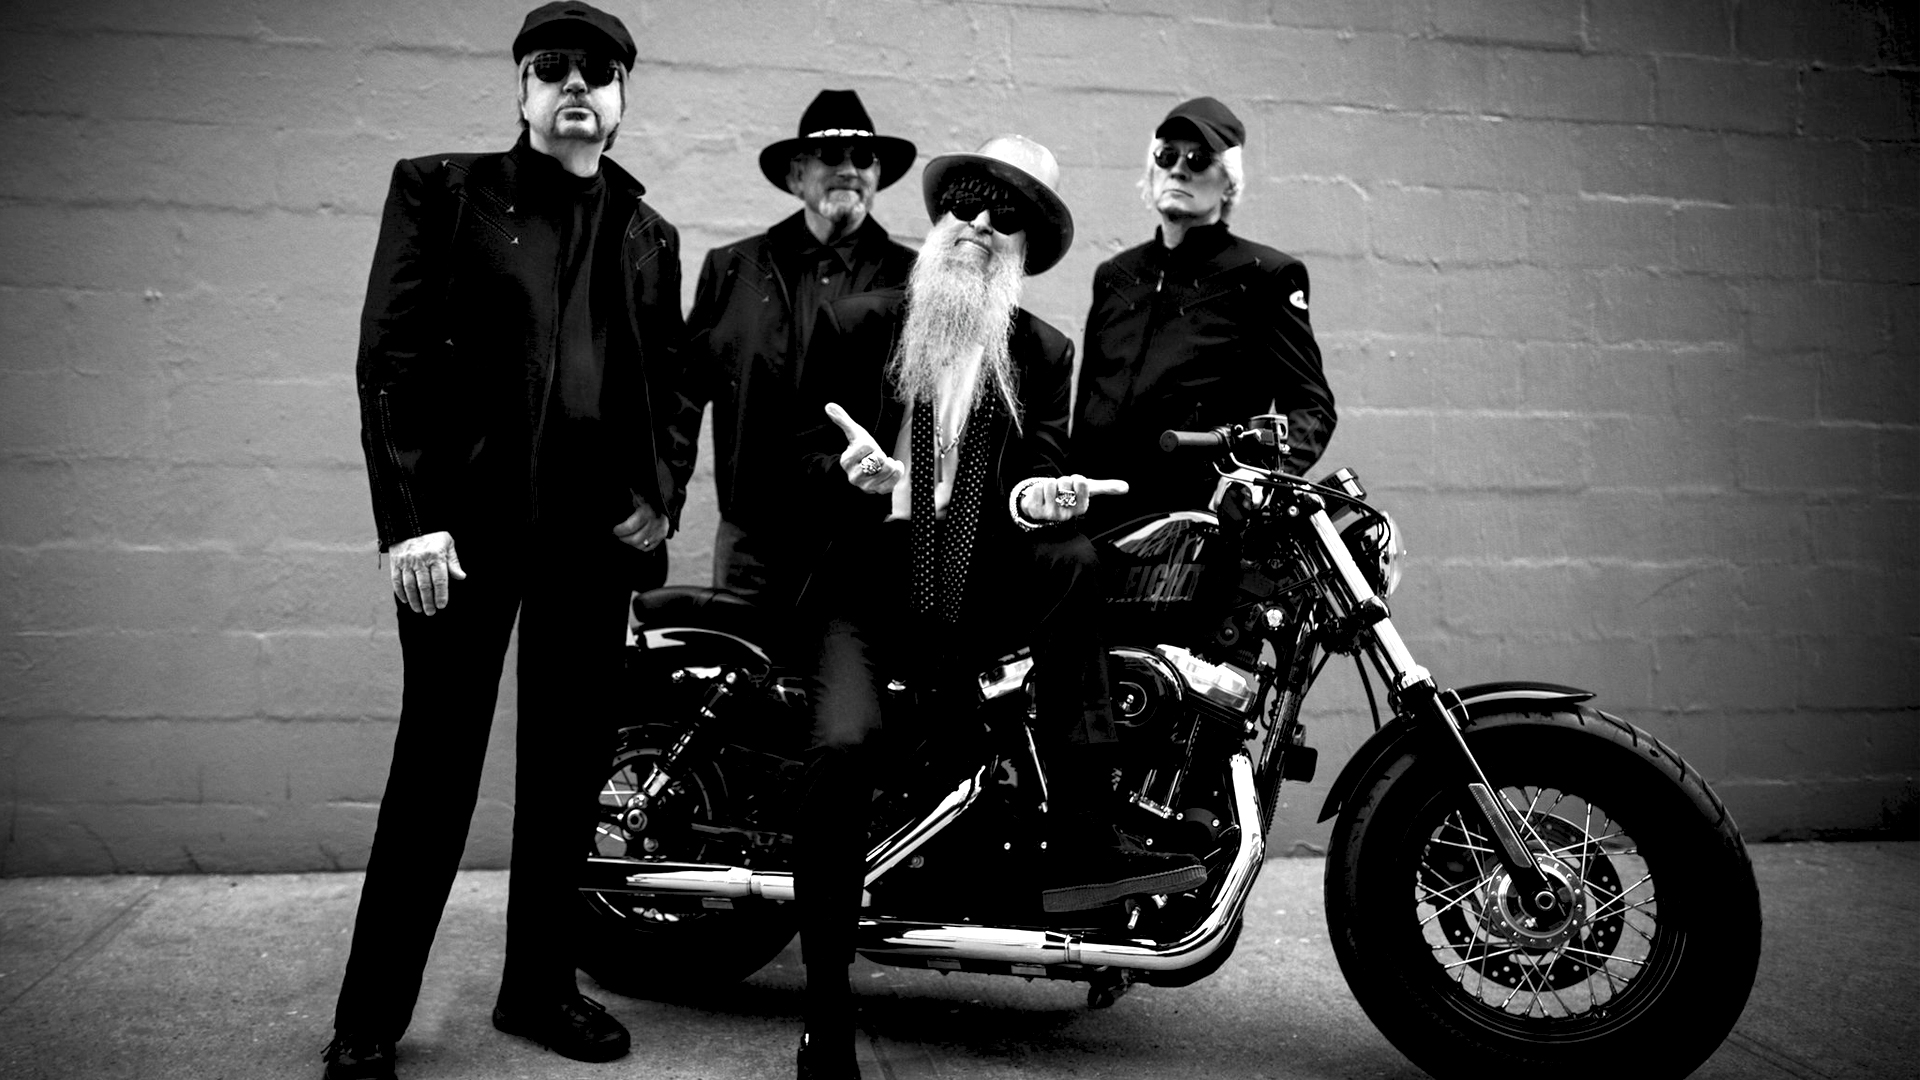 Zz top iphone wallpaper - Zz Top Iphone Wallpaper Zz Top Hd Wallpapers